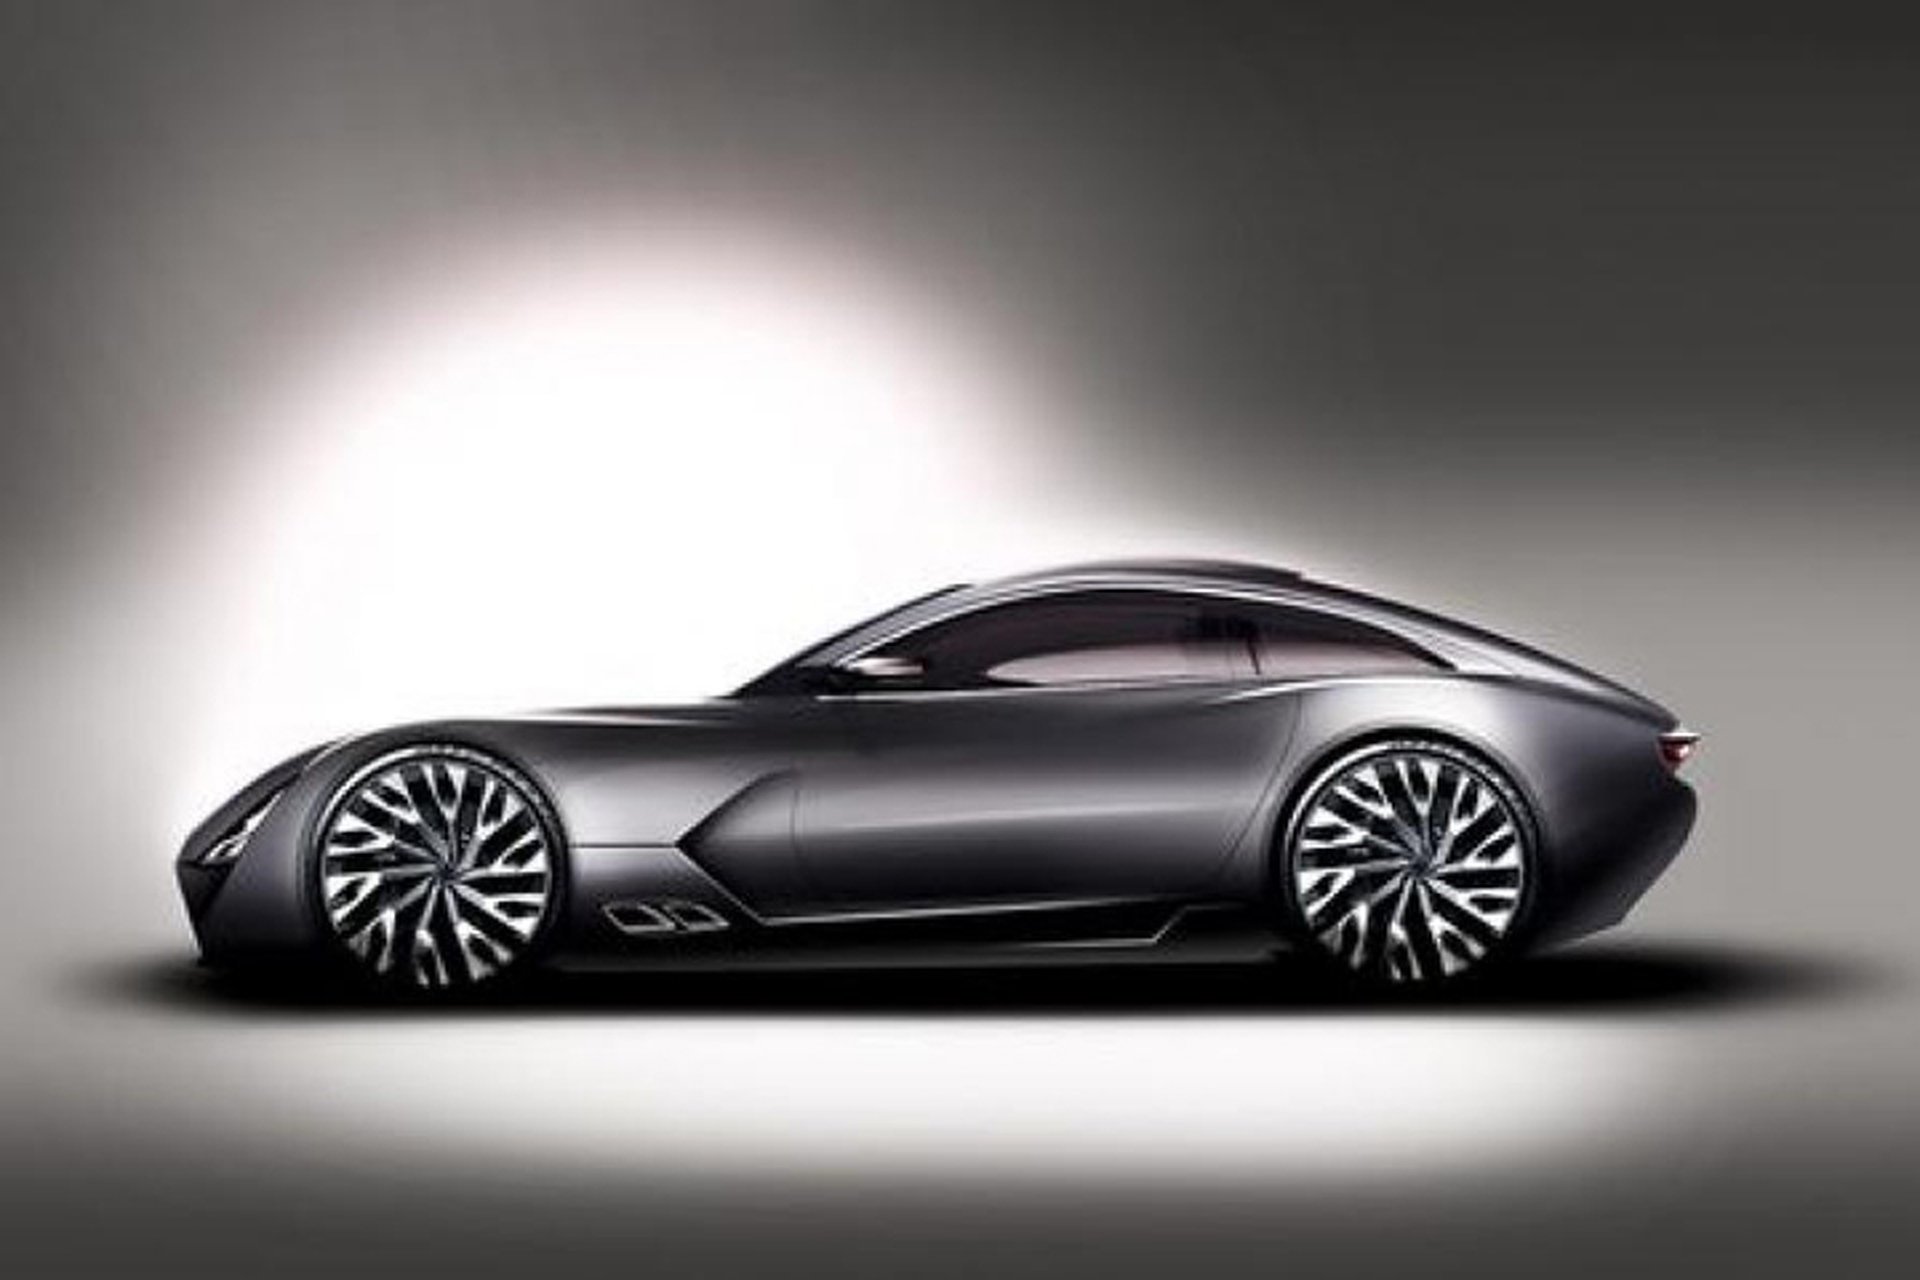 Heres Your First Look At The TVR Sports Car - New performance cars